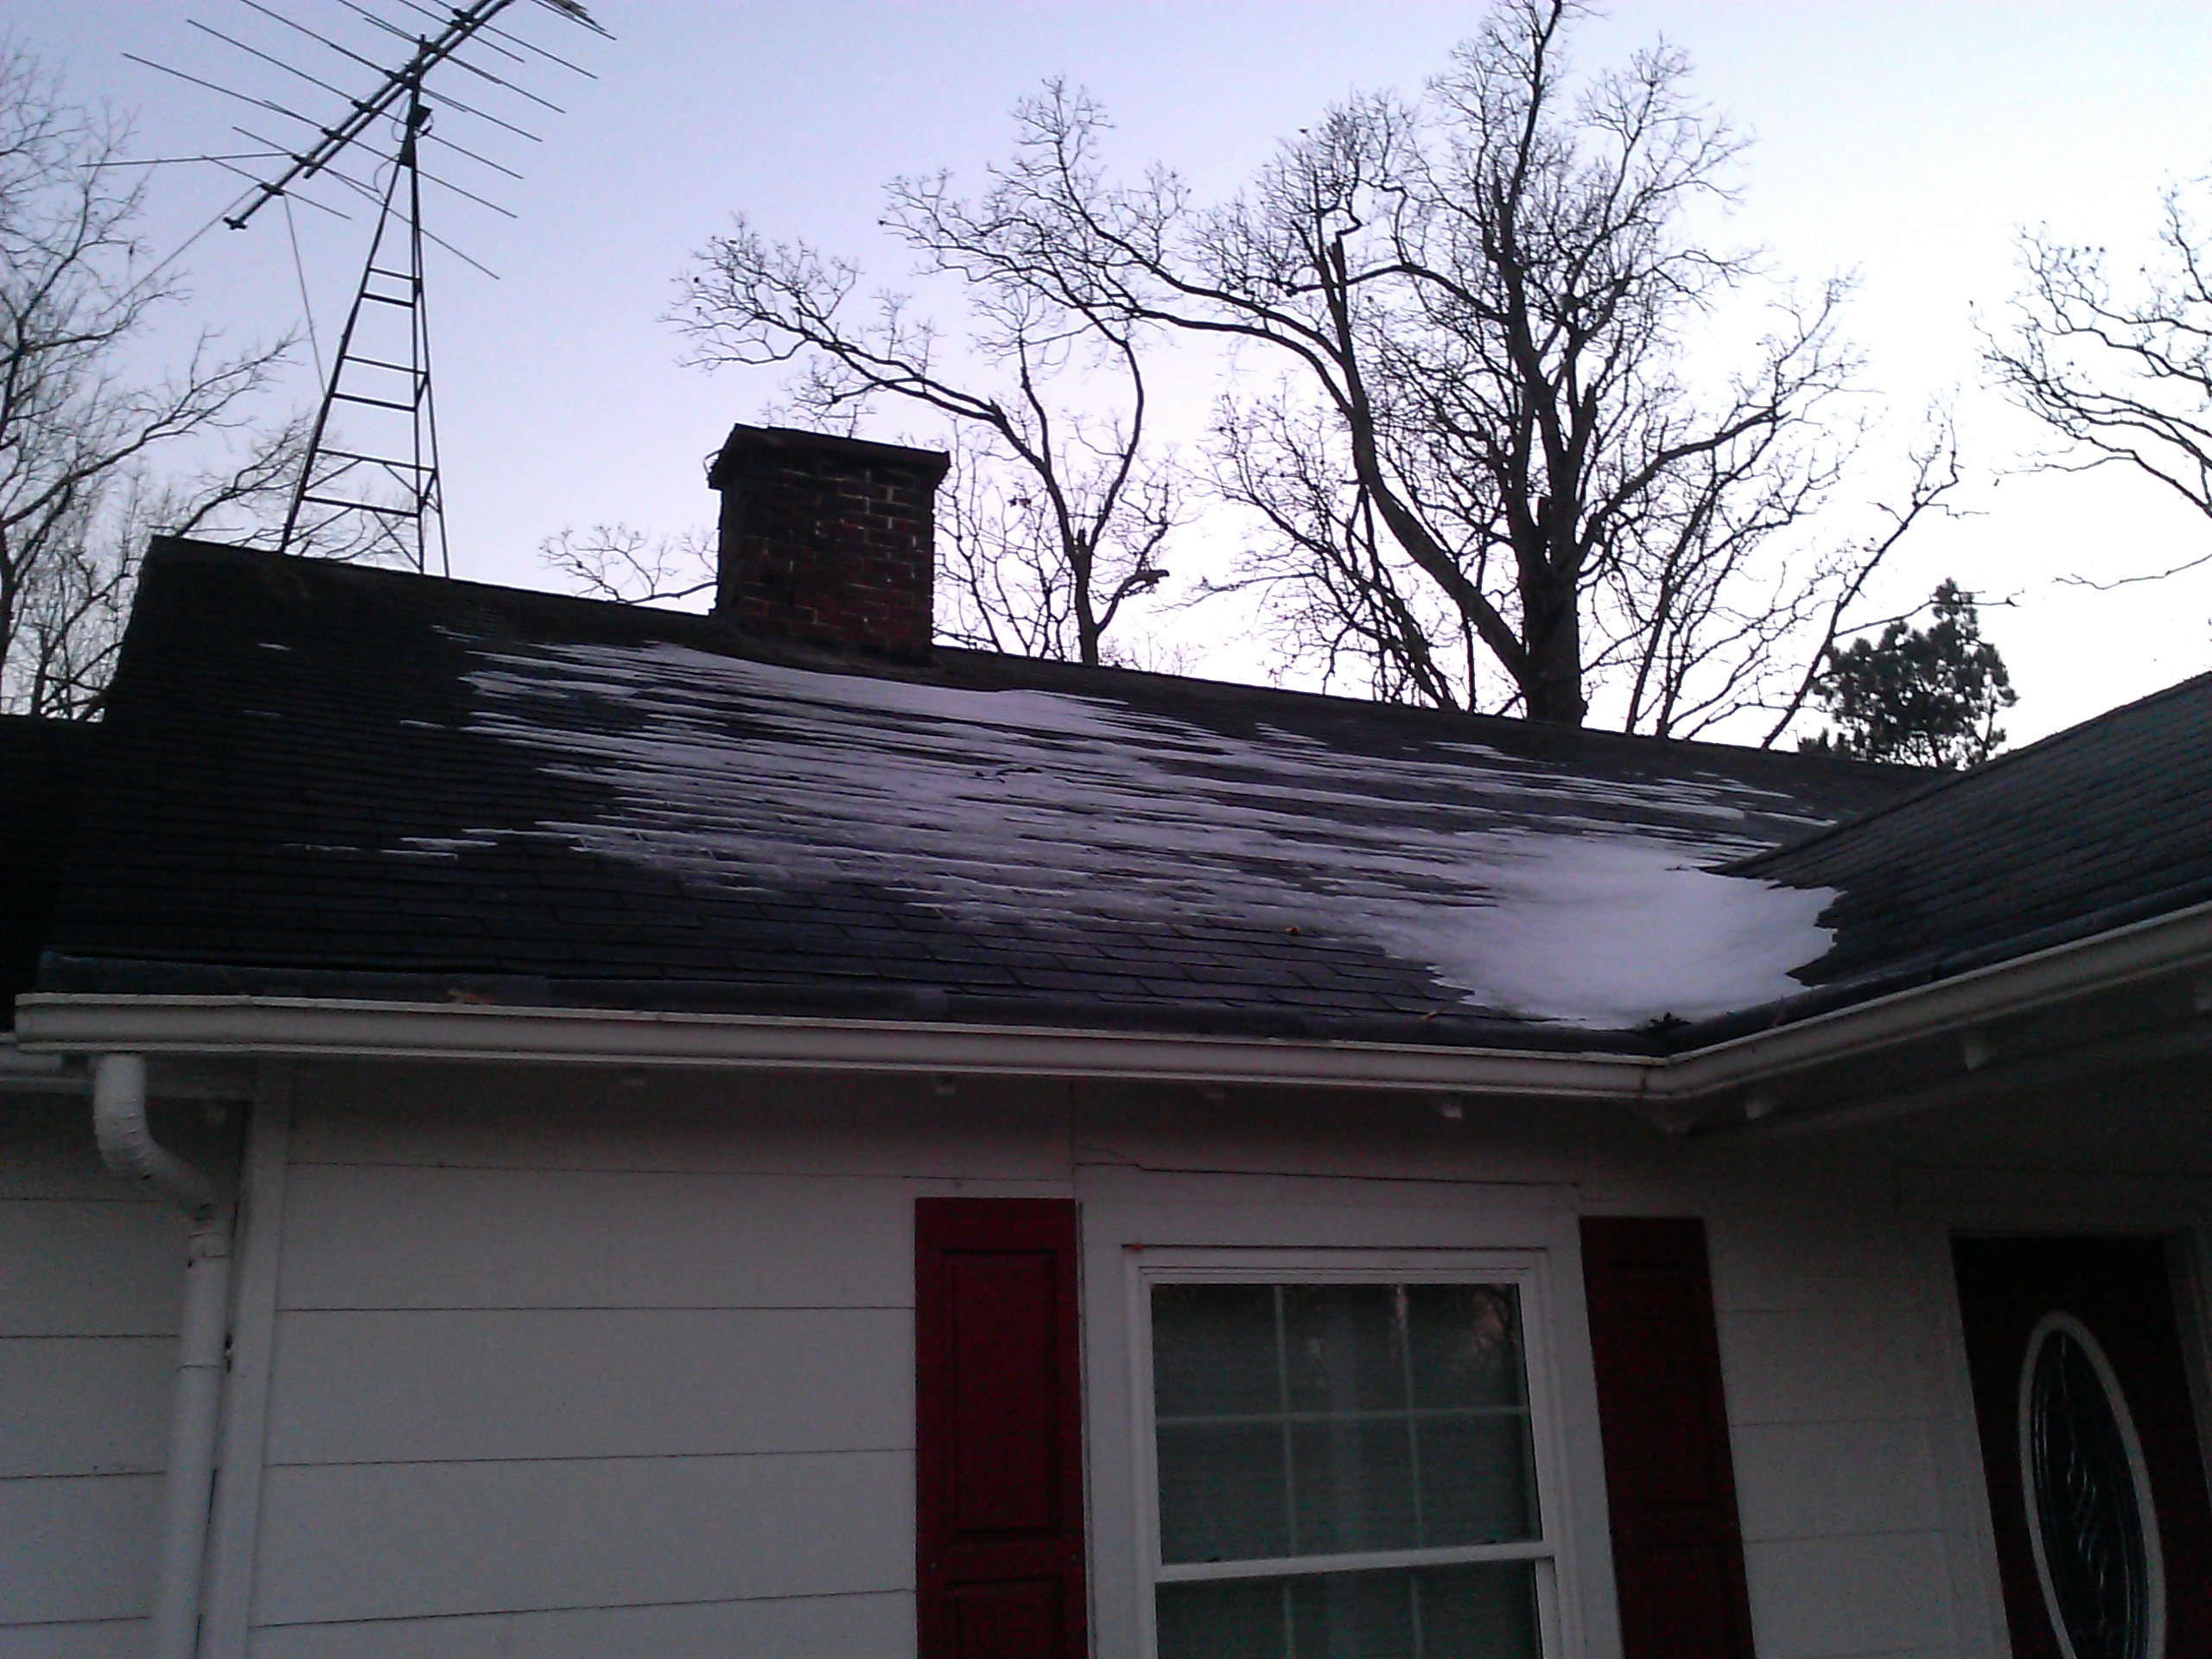 Snow on Roof top & R50 Attic Insulation- They called me crazy   Duckweed Gardening